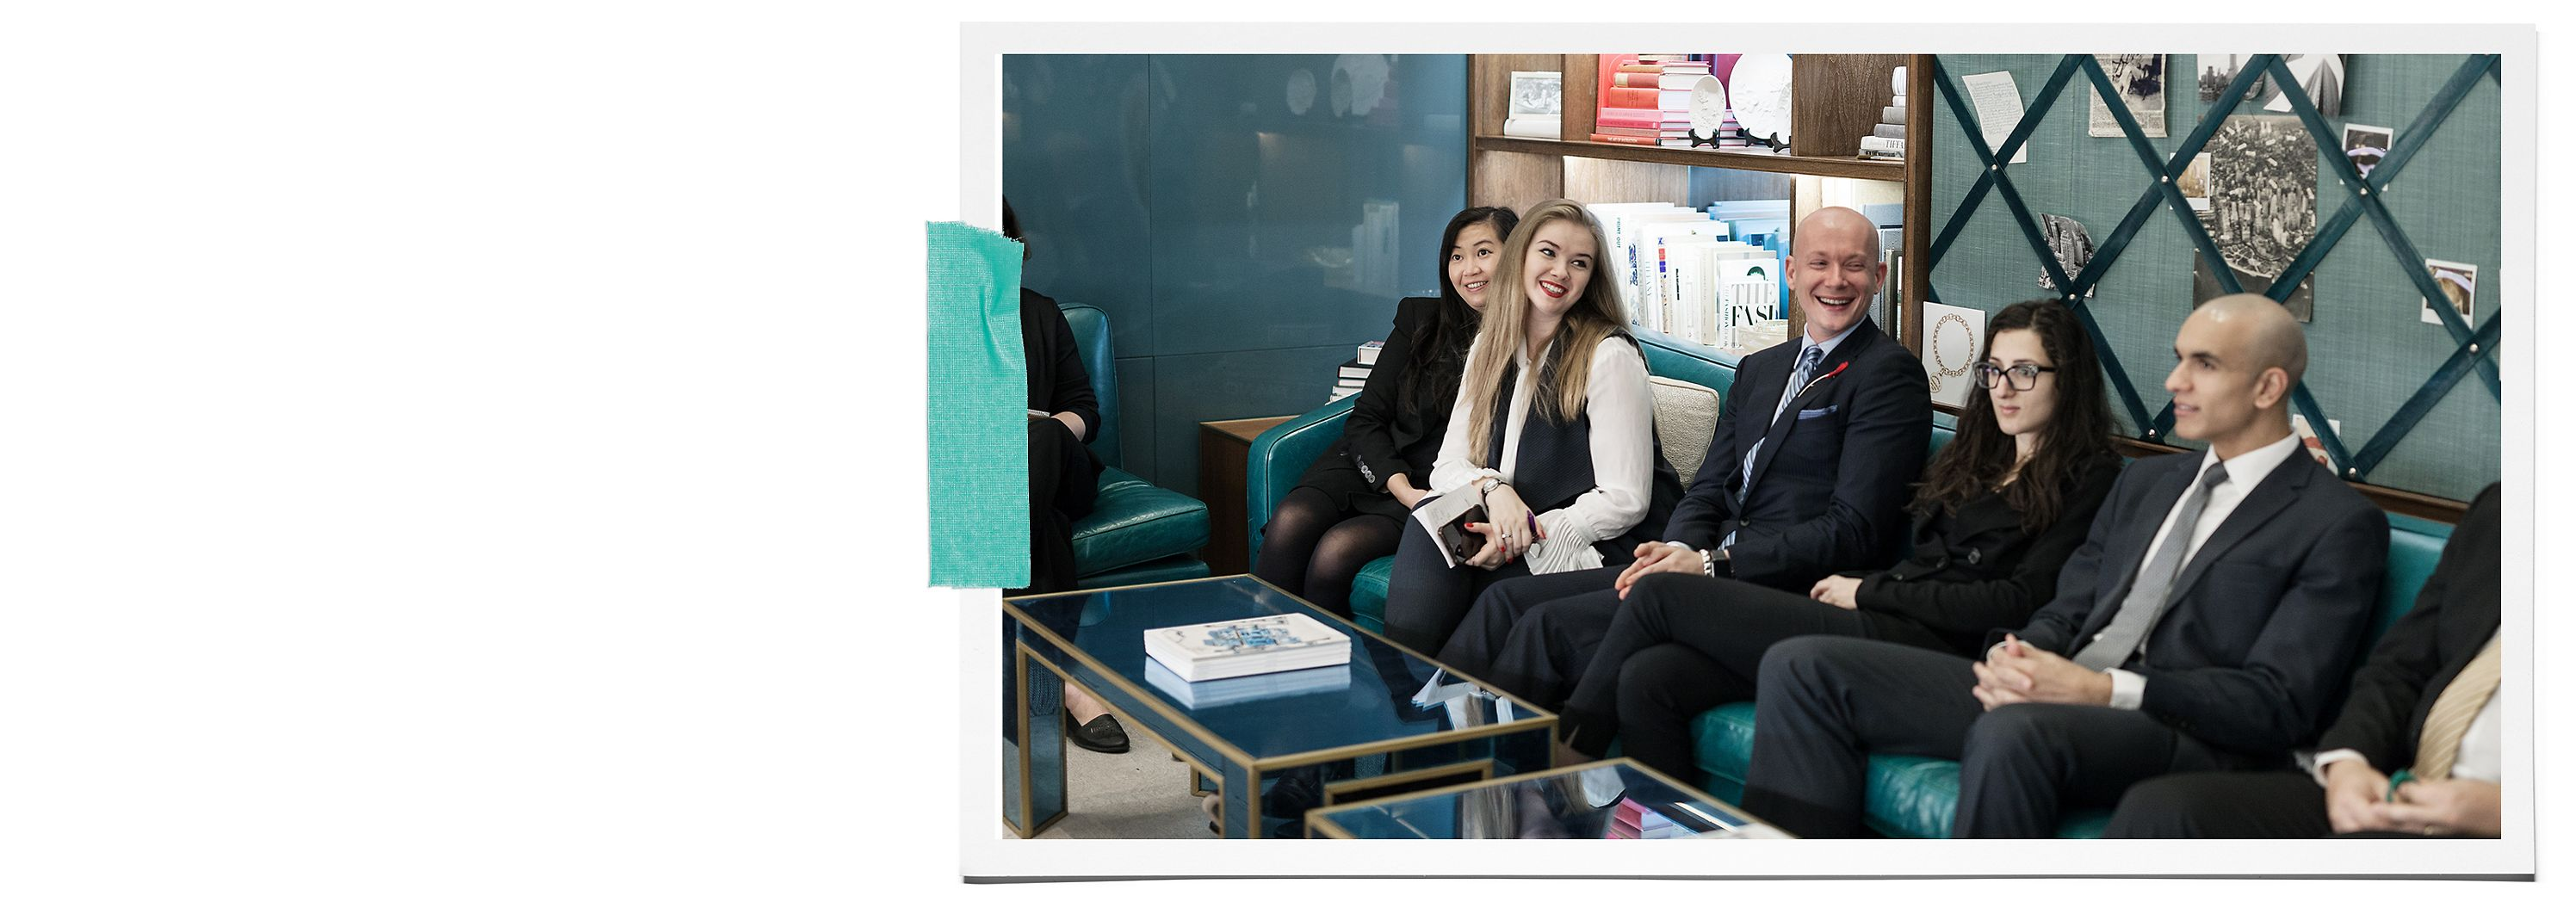 Tiffany & Co. Employee Engagement